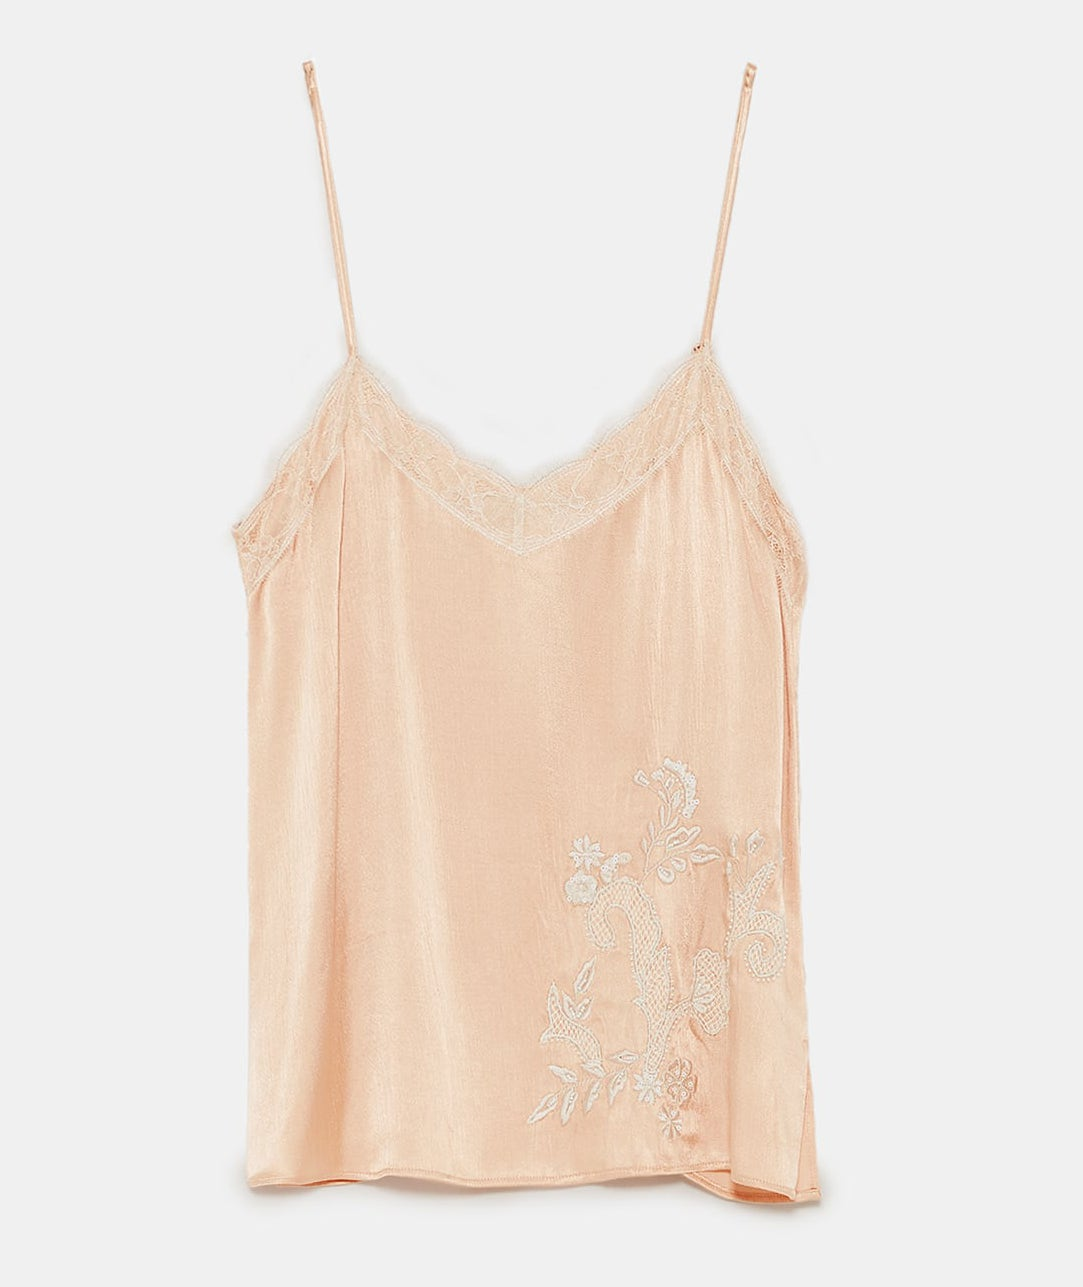 Zara nude pink embroidered camisole top